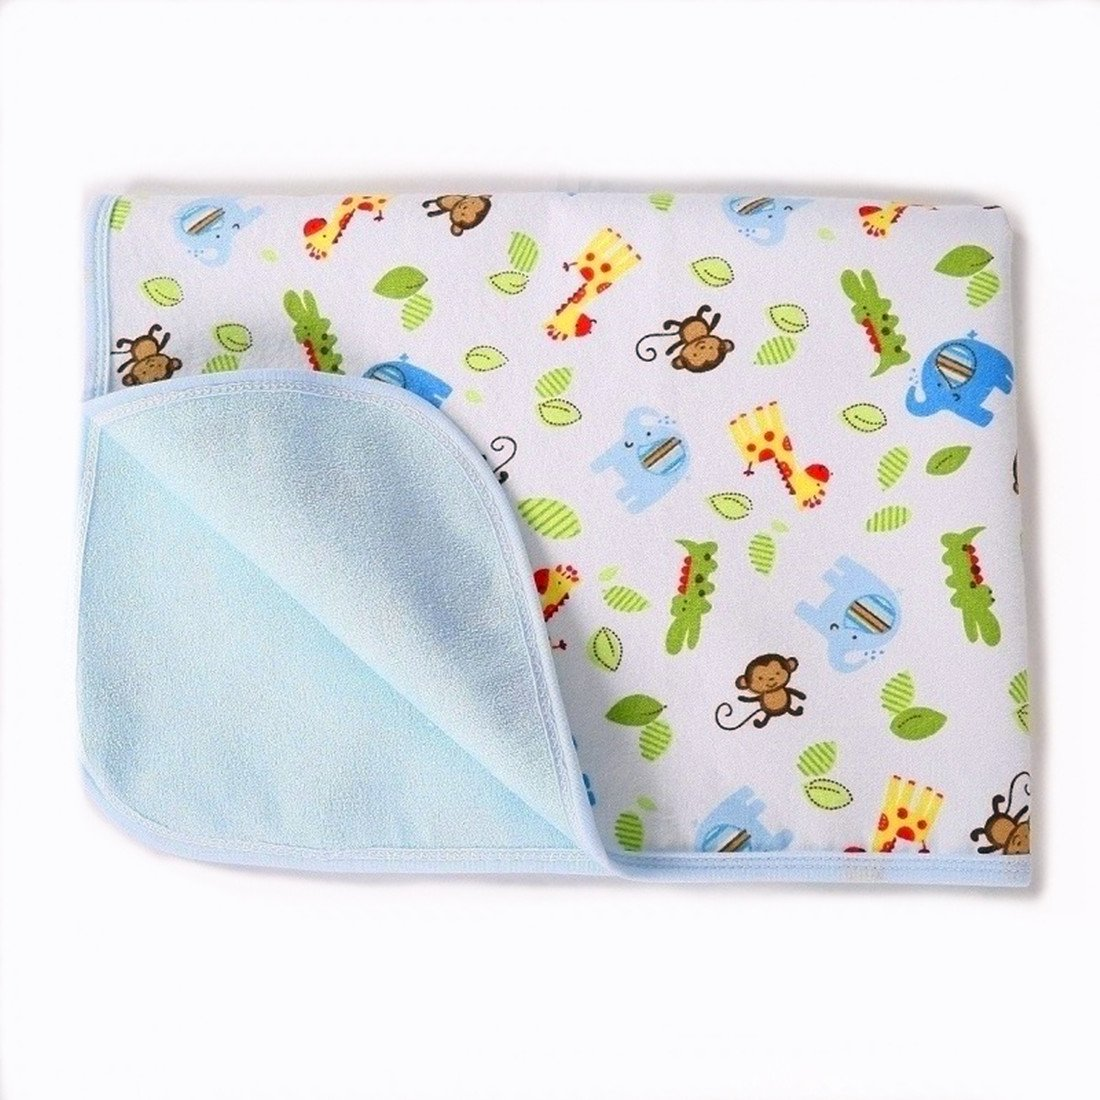 Baby Reusable Diaper Changing Pad for Home and Travel,Portable Waterproof Urine Mat Packing of 1 (L (27.56 x 39.37 Inch), Frog & Giraffe) jiayun pads-f-l